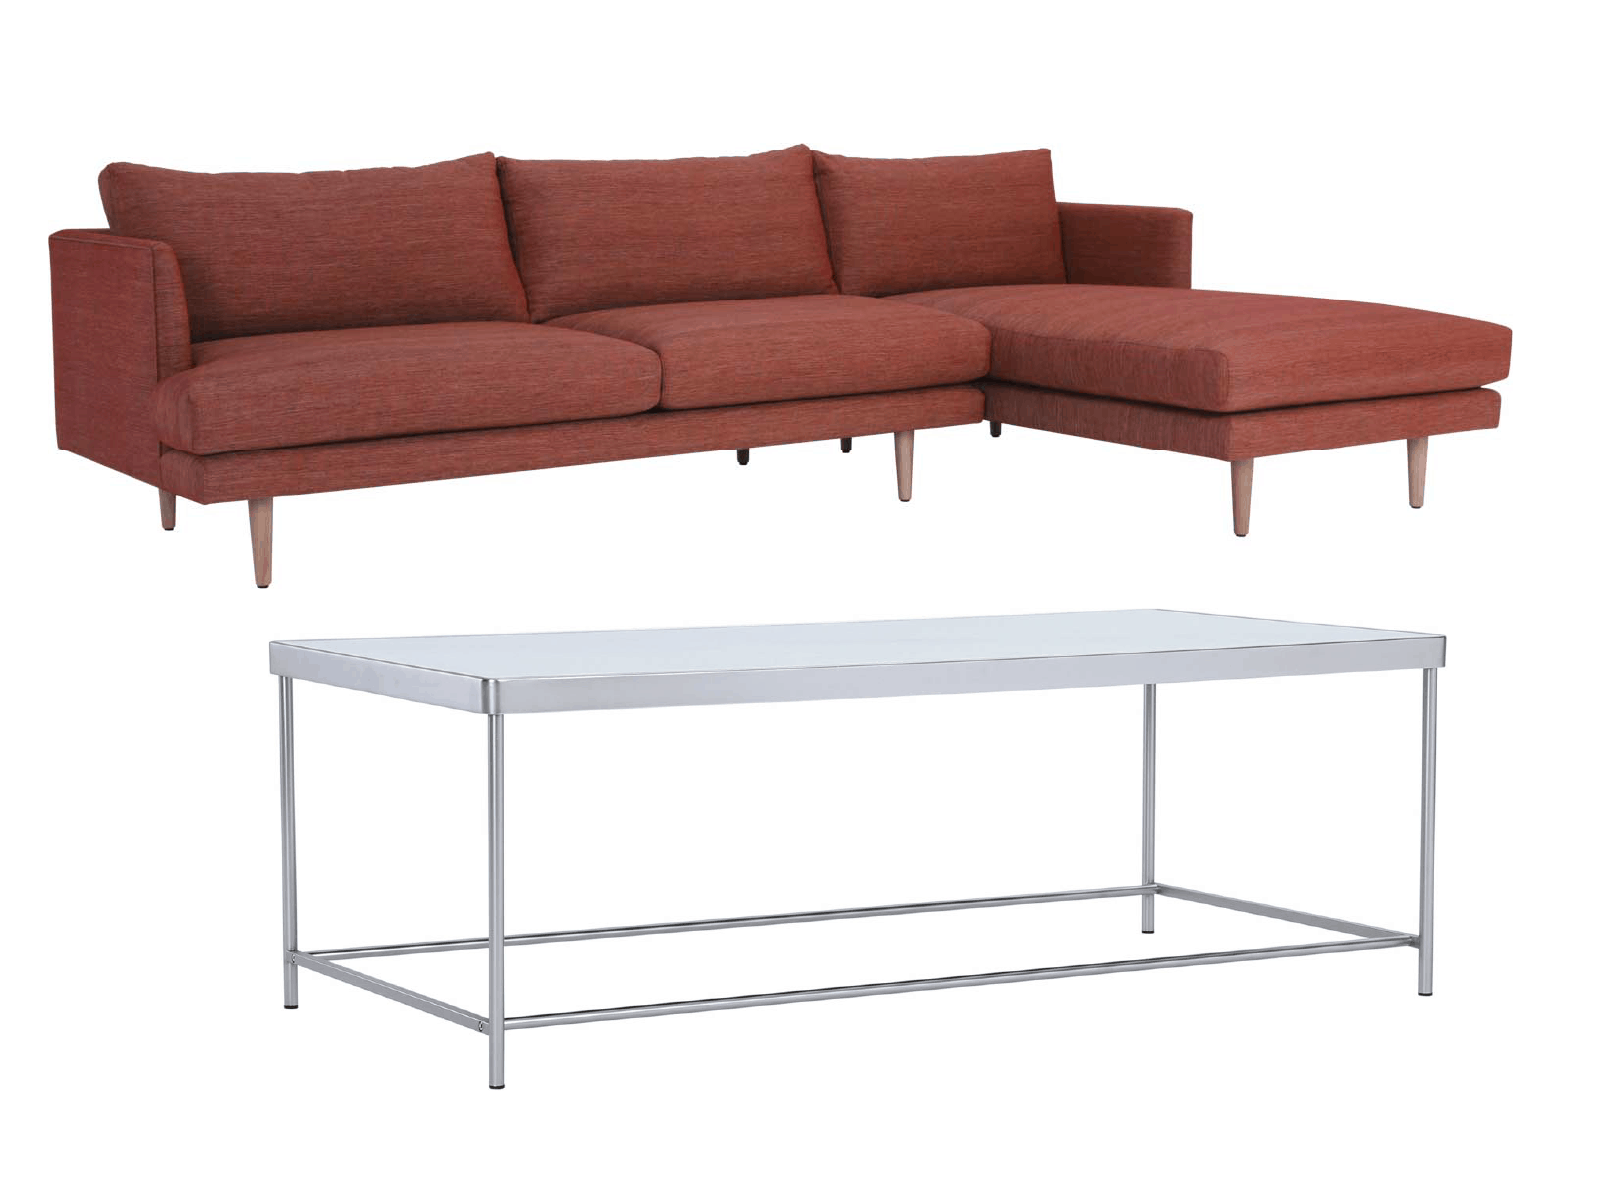 Duster 3 Seater L Shape With Coffee Table Set@2x